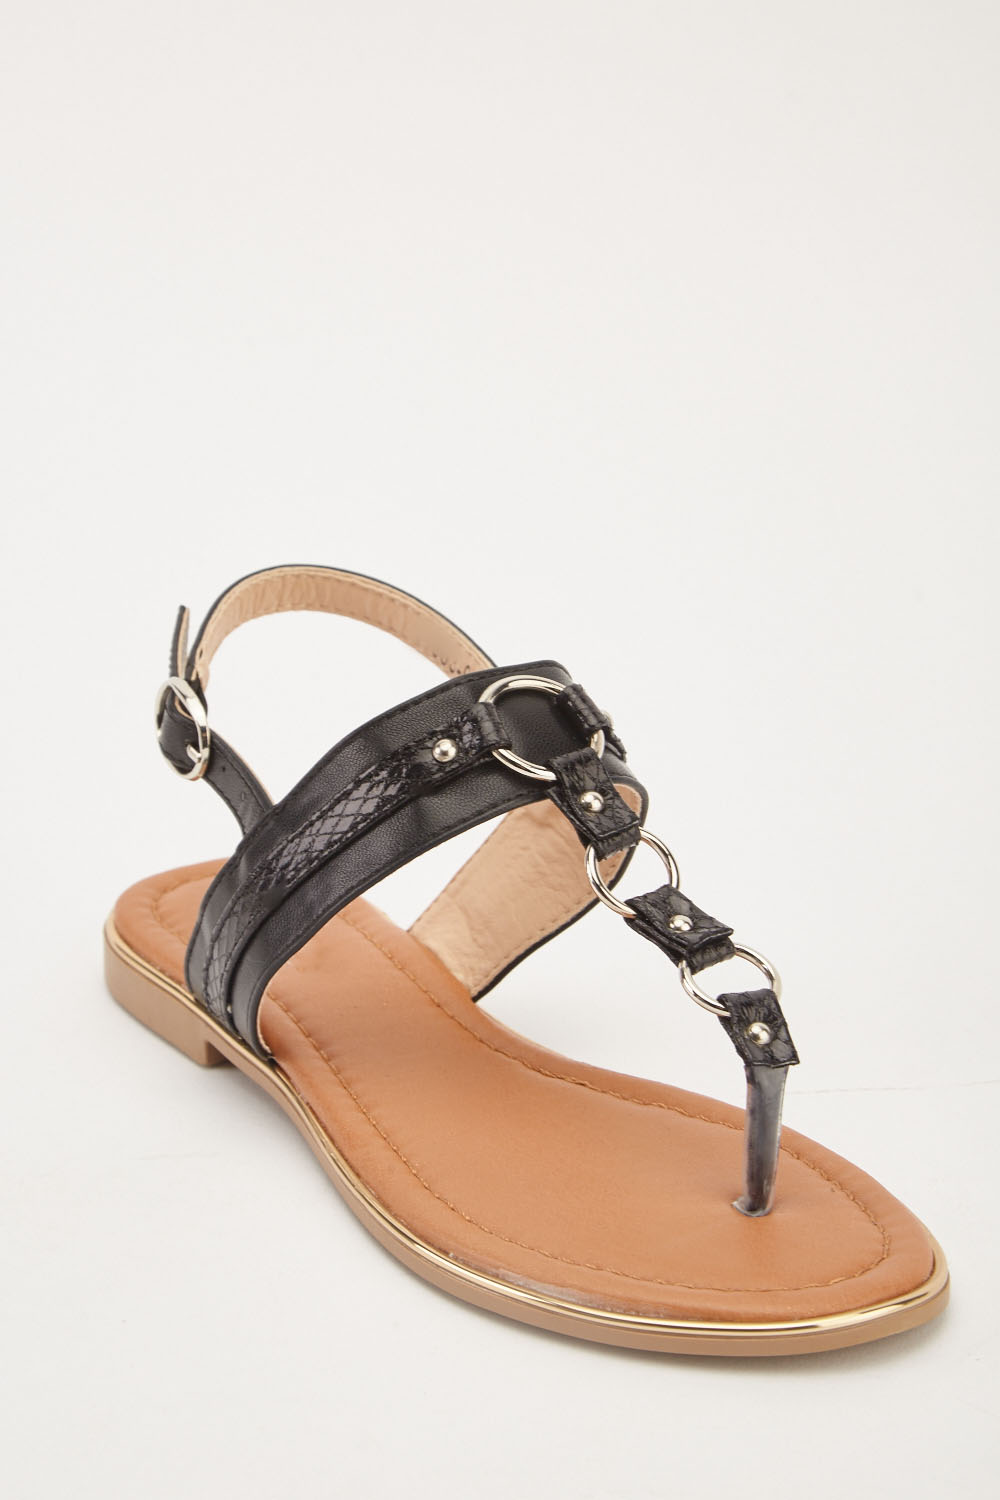 665ccc2d069 Ankle Strap Flat Sandals - Black - Just £5